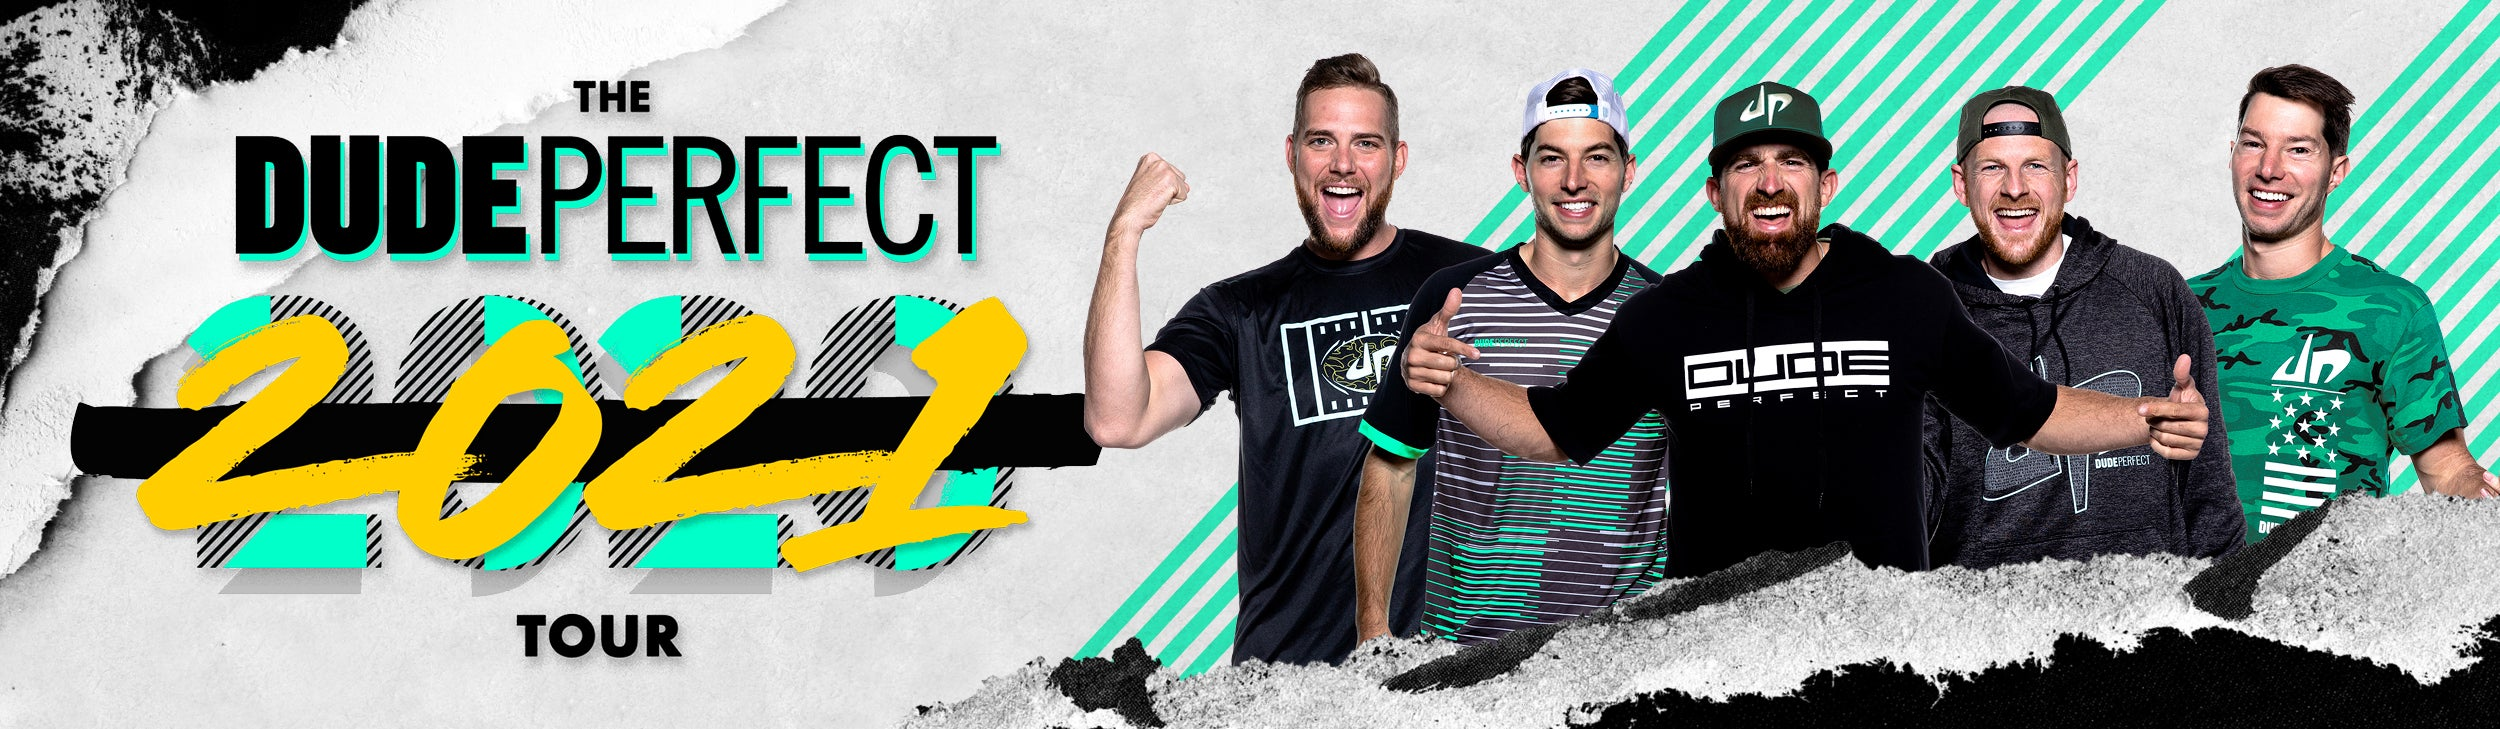 RESCHEDULED: The Dude Perfect 2021 Tour